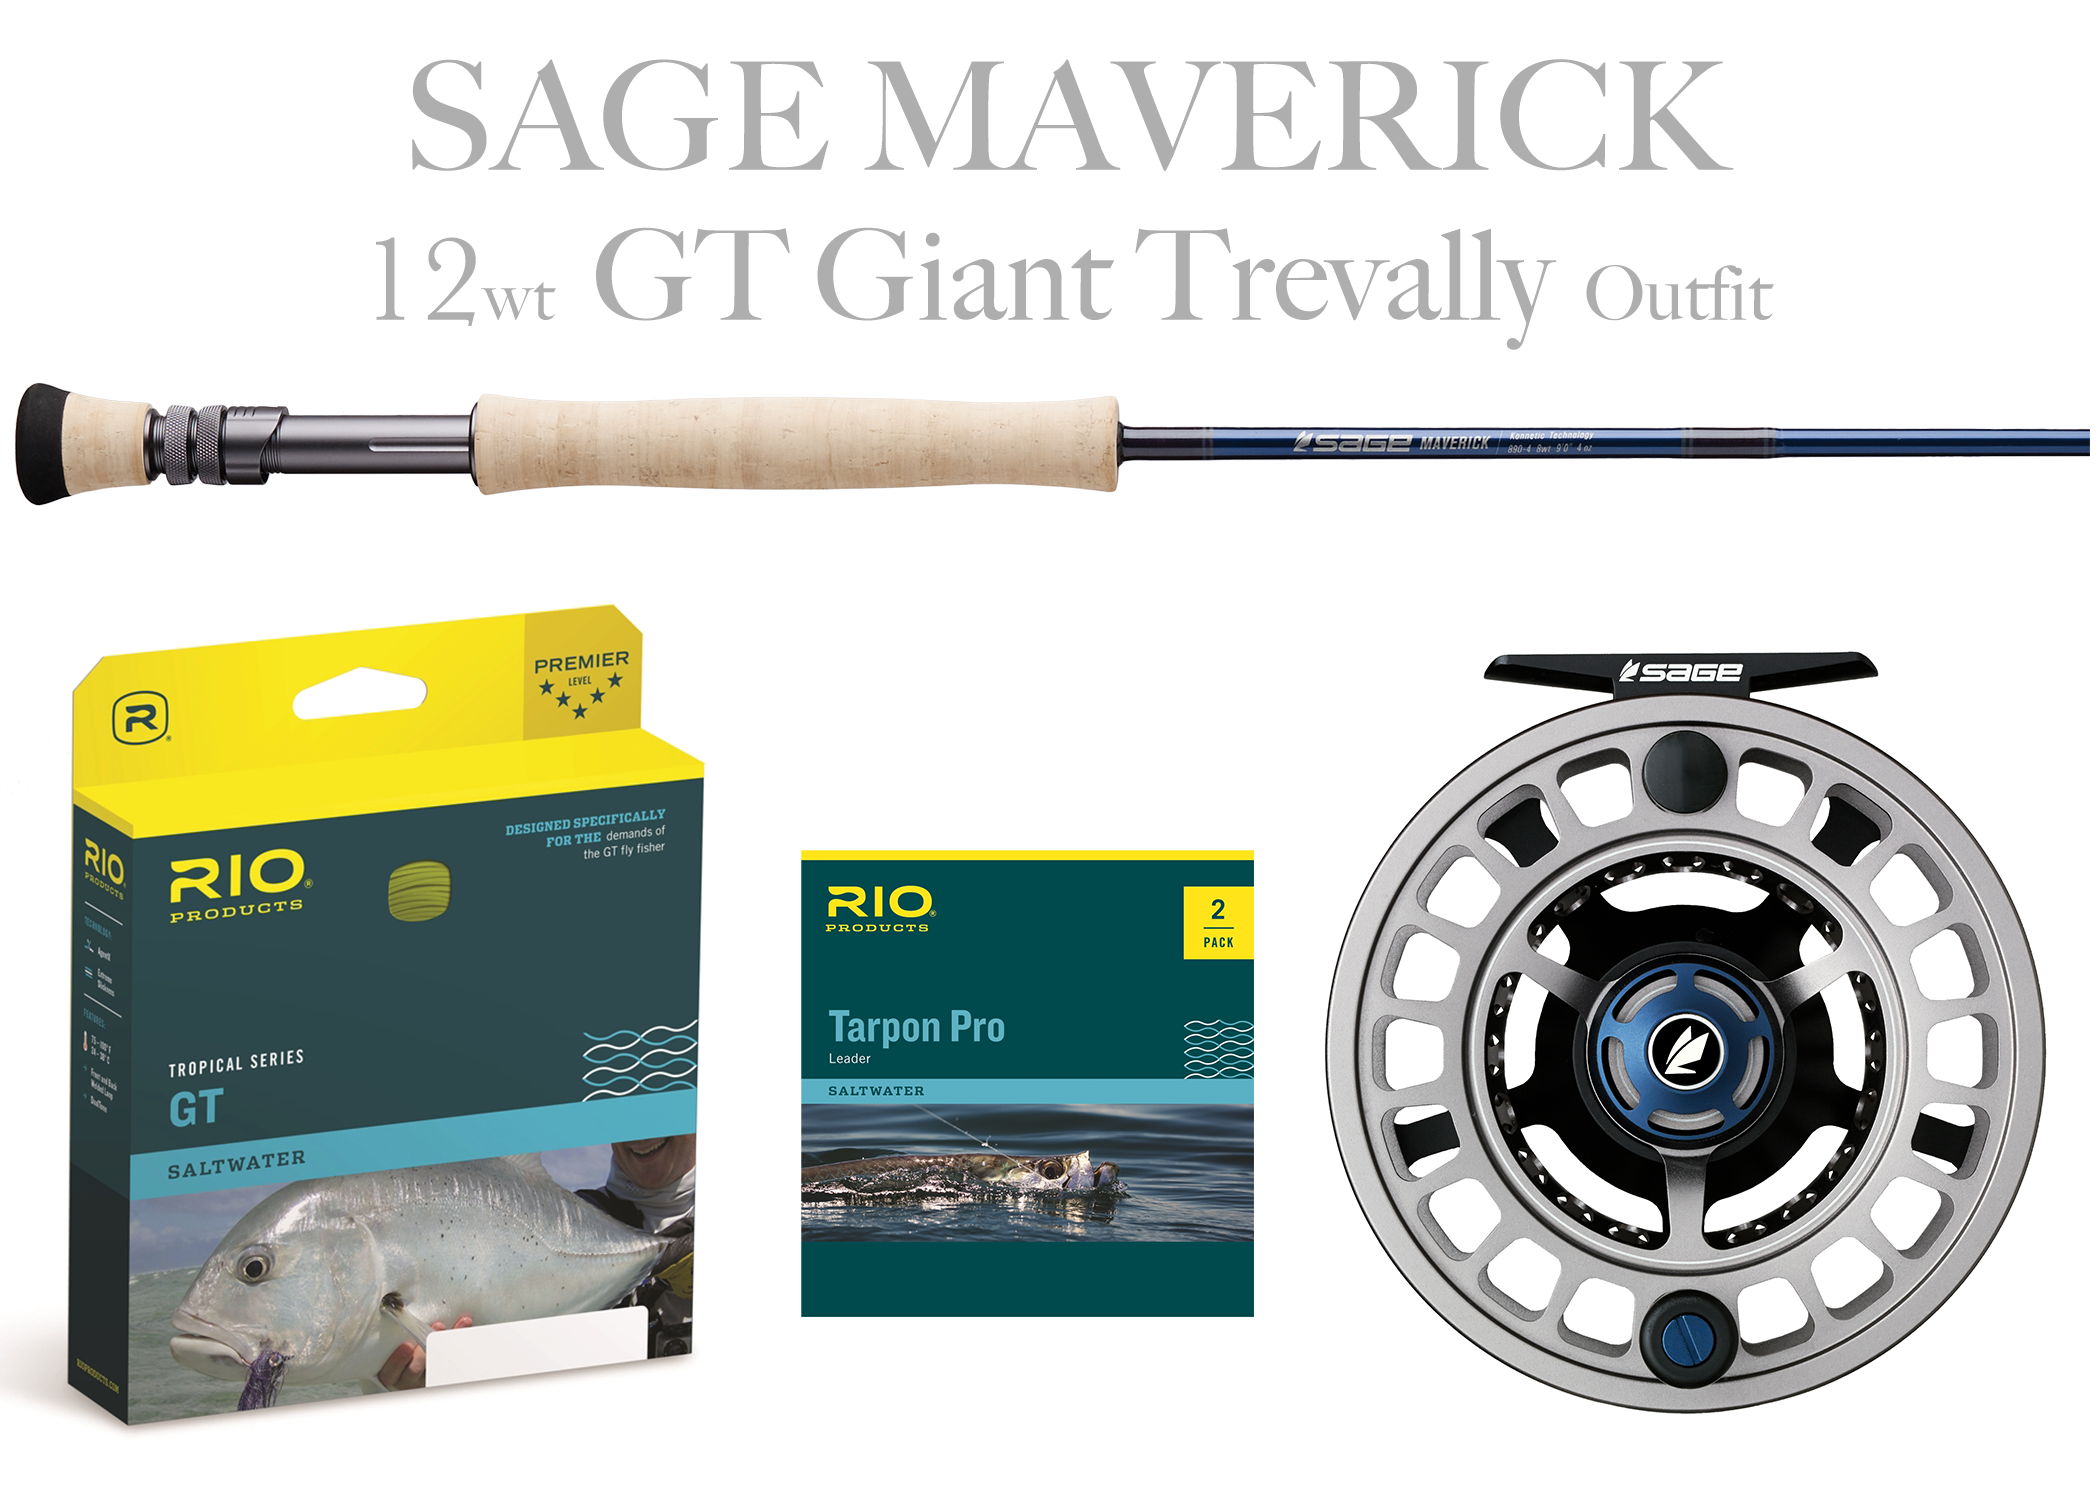 Sage Maverick Fly Rod Offshore Combo 14wt Fly Rod Spectrum Max Ree Salt Fly Pro